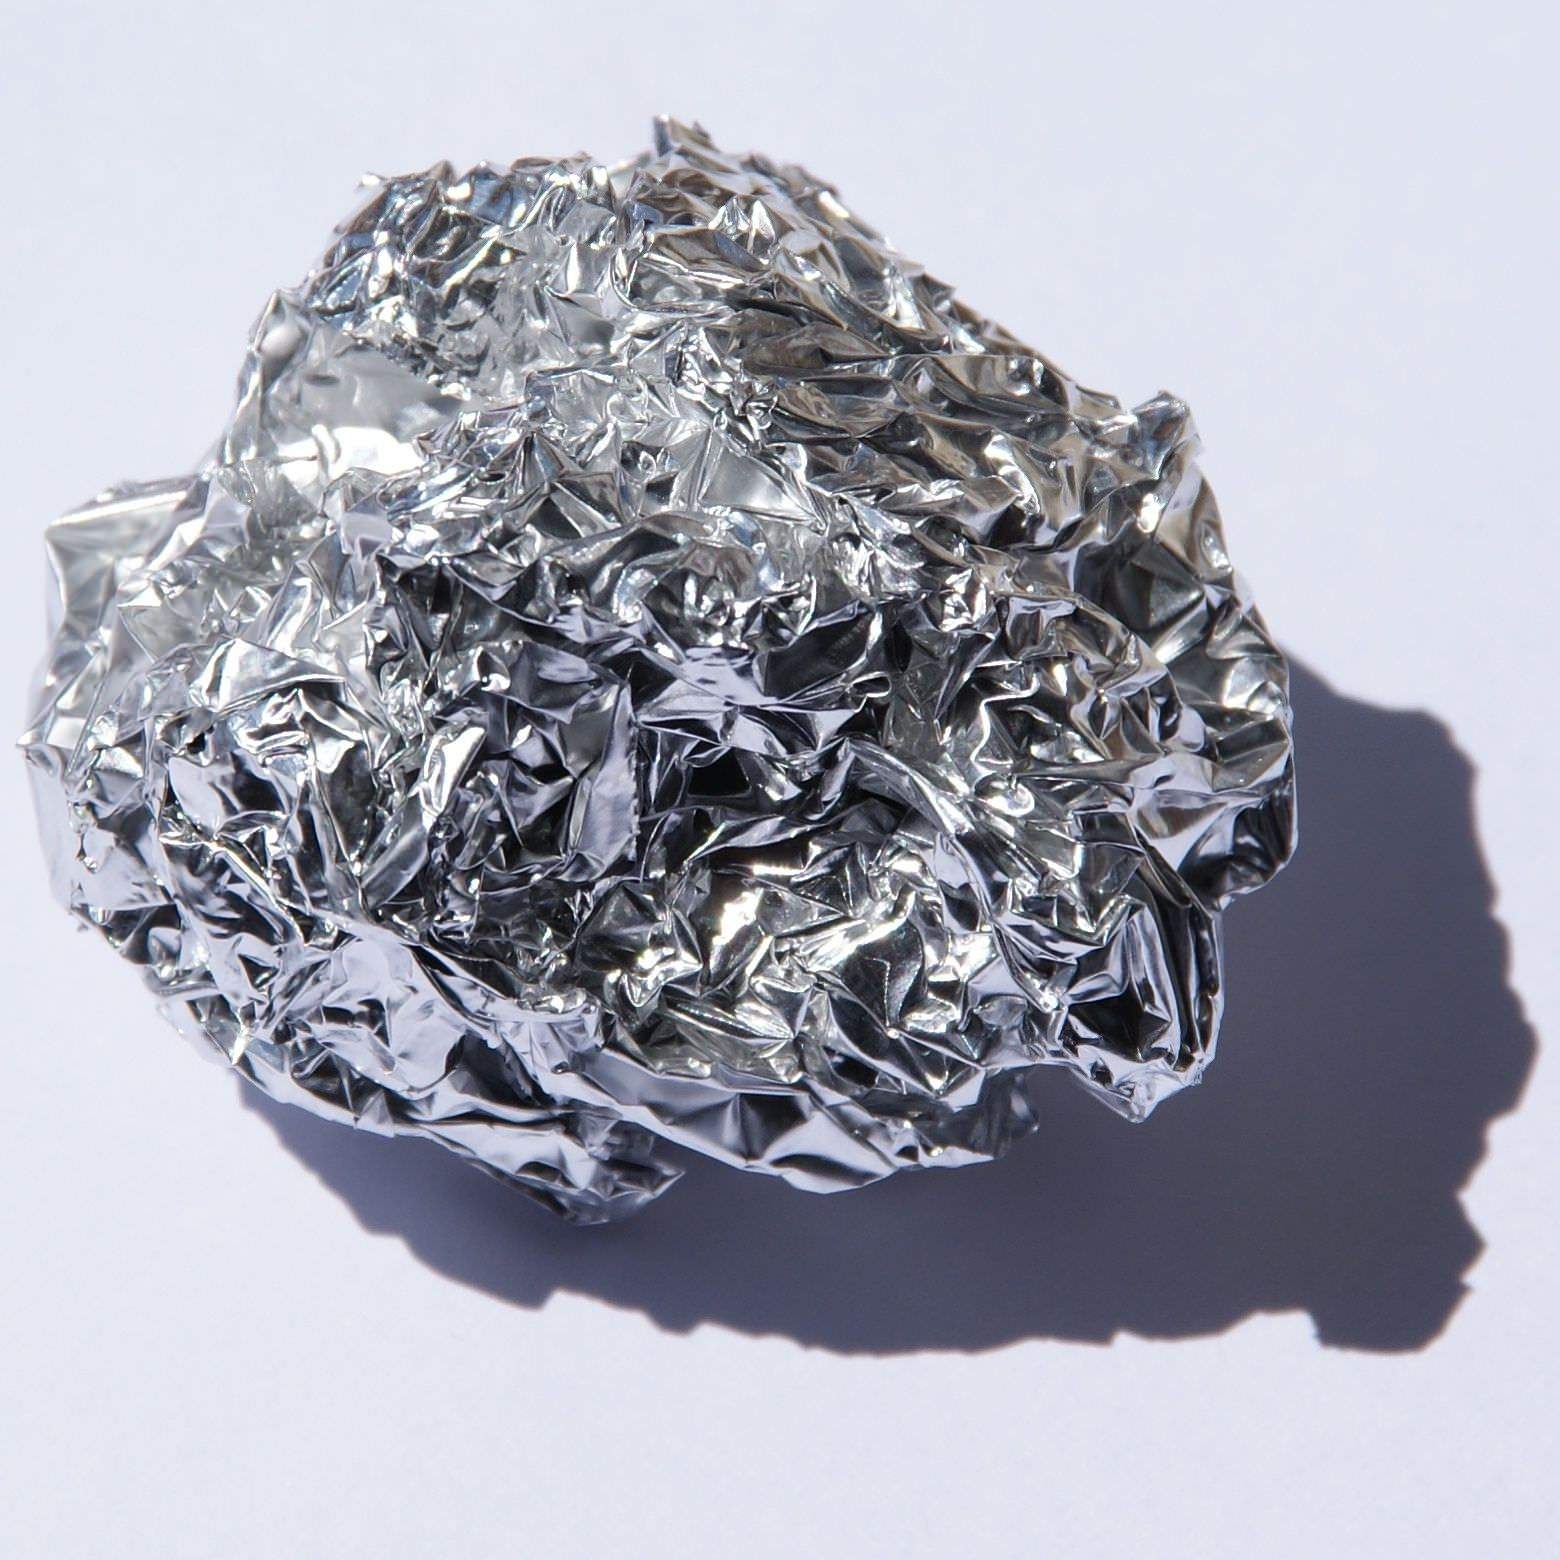 Scientists Why You Should Never Ever Cook With Aluminum Foil